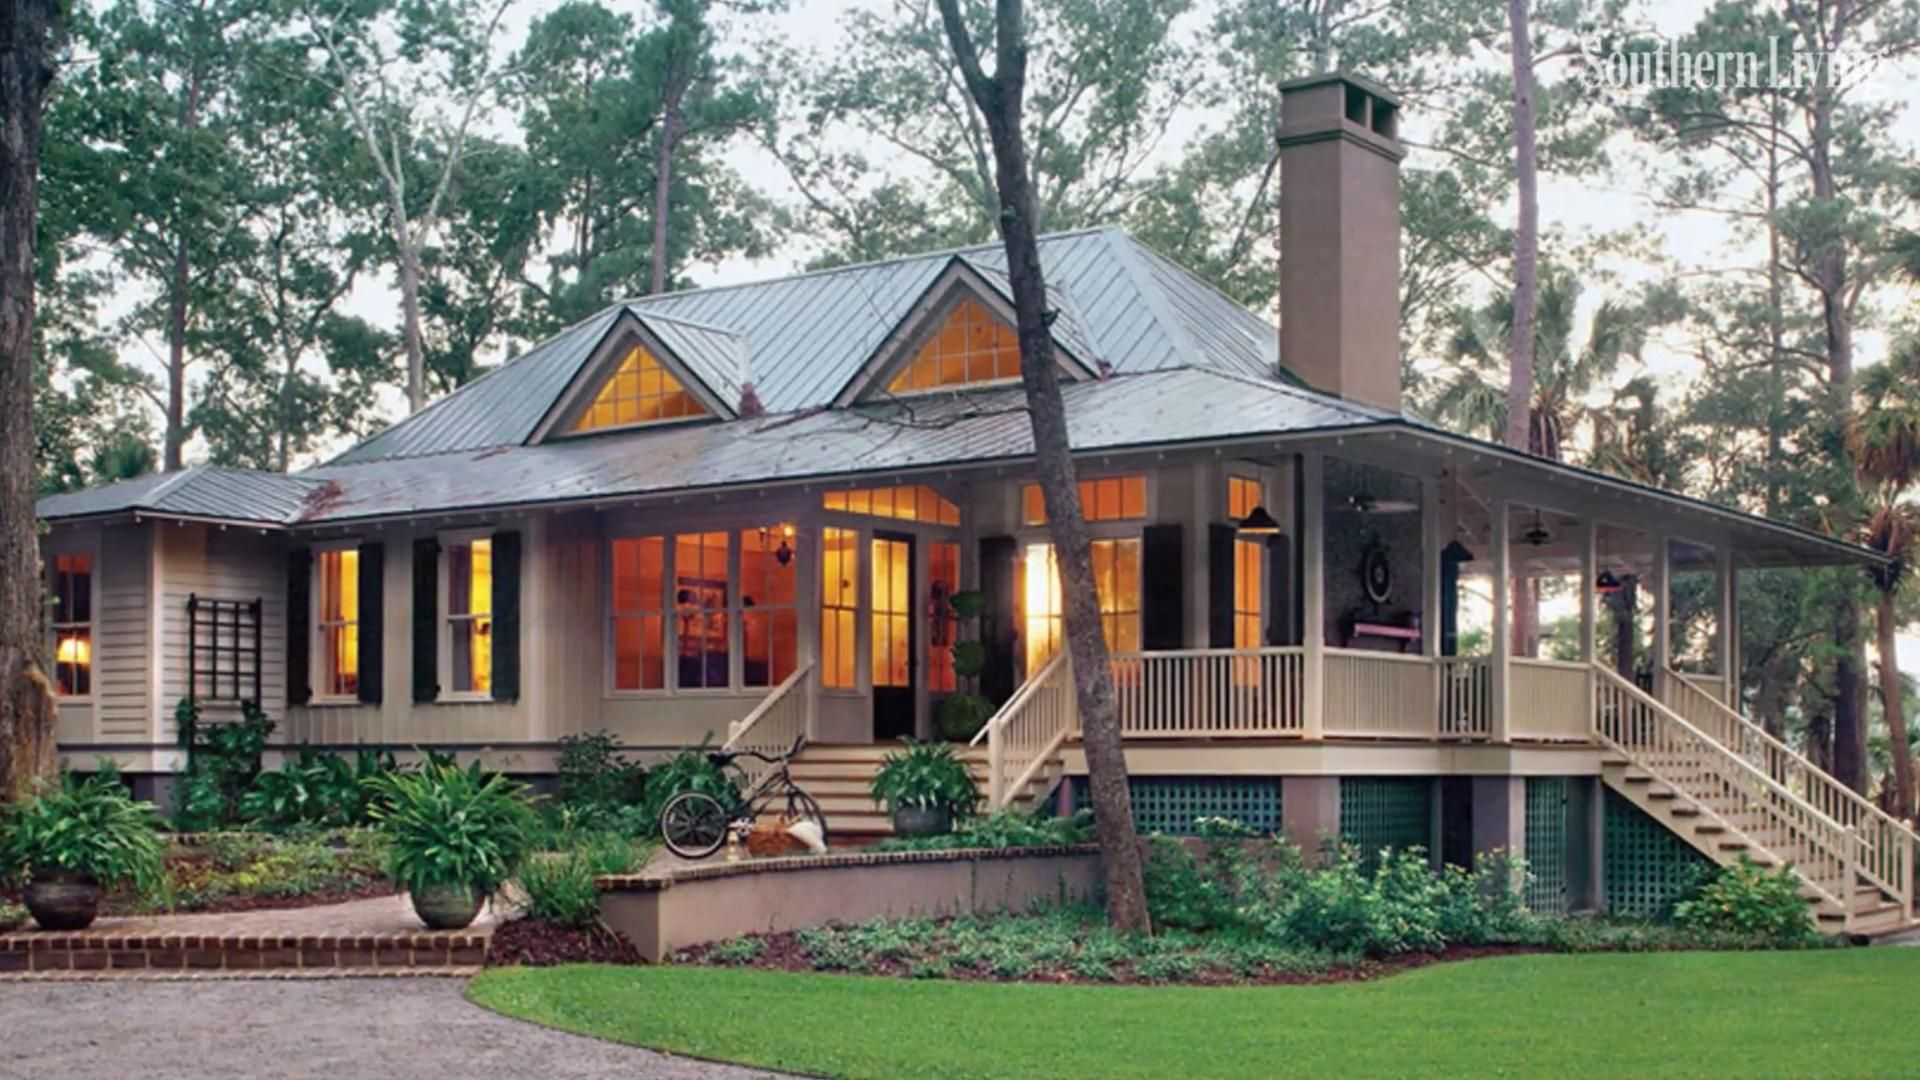 6 Tips For Living In A 660 Square Foot Cottage Southern House Plans Lake House Plans Retirement House Plans